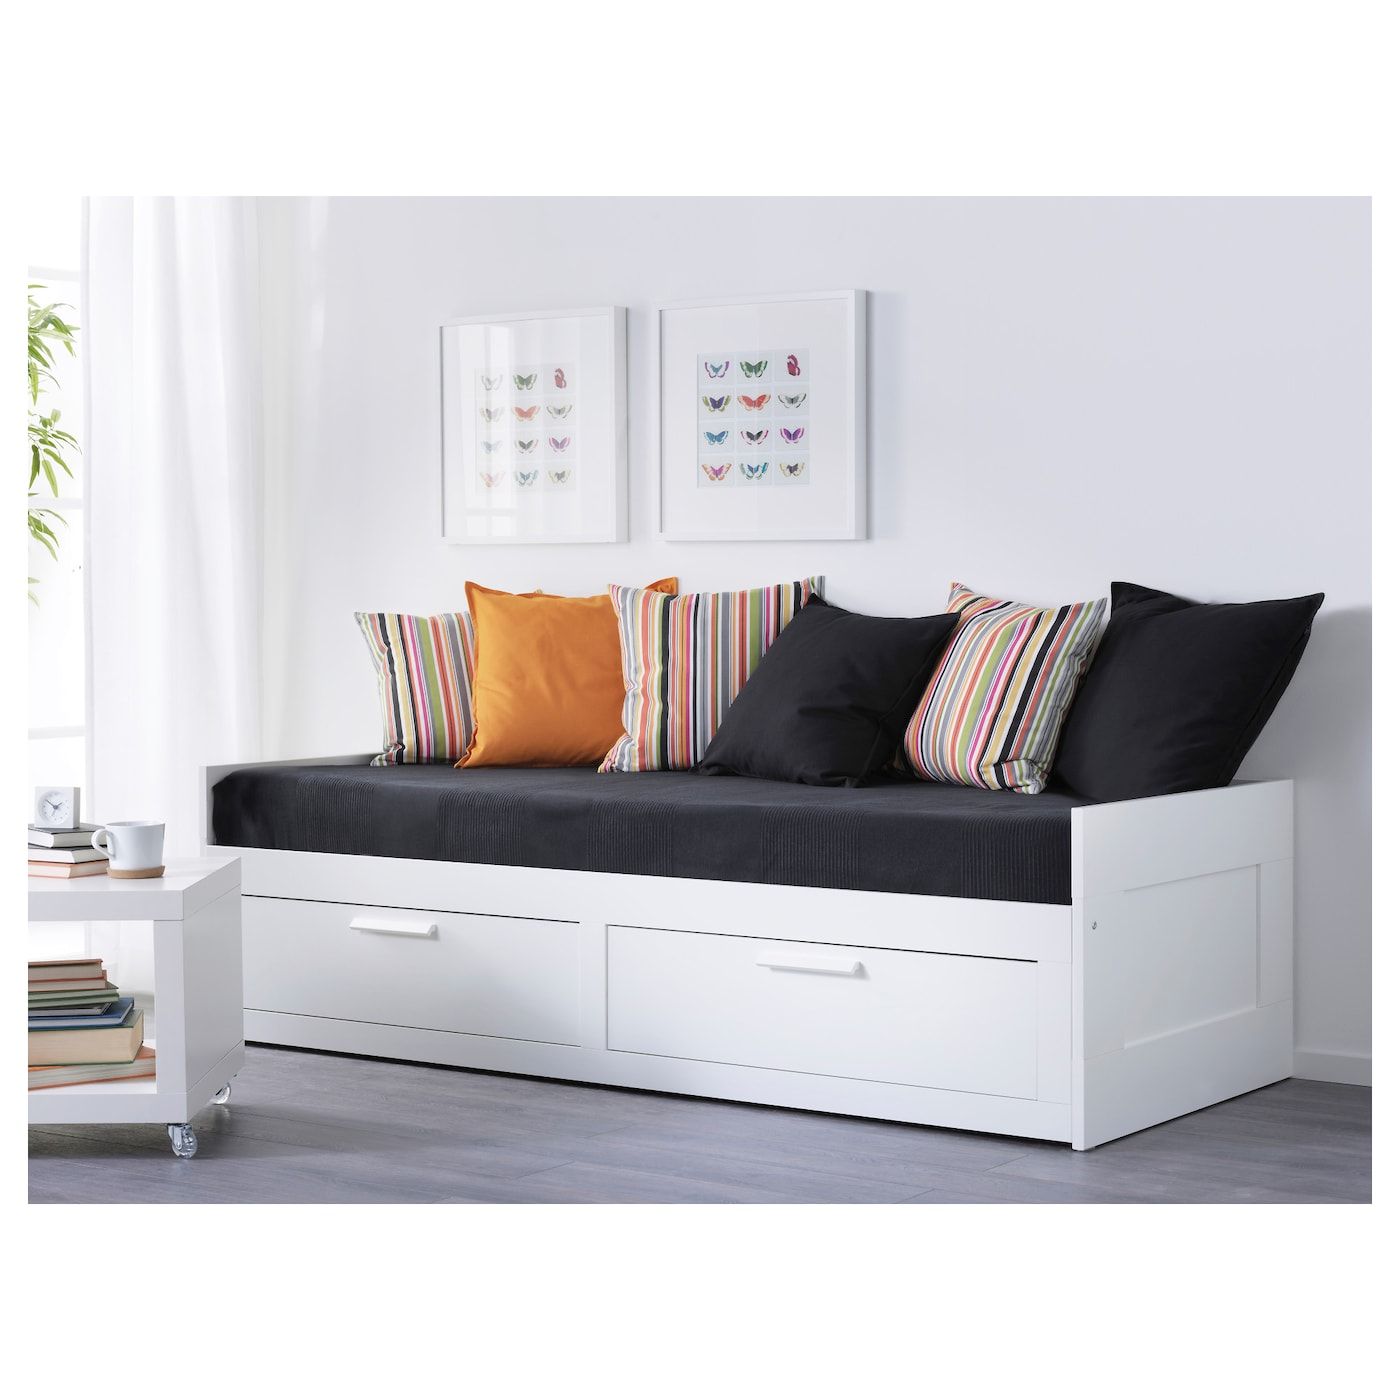 Brimnes day bed w 2 drawers 2 mattresses white moshult - Letto contenitore ikea brimnes ...